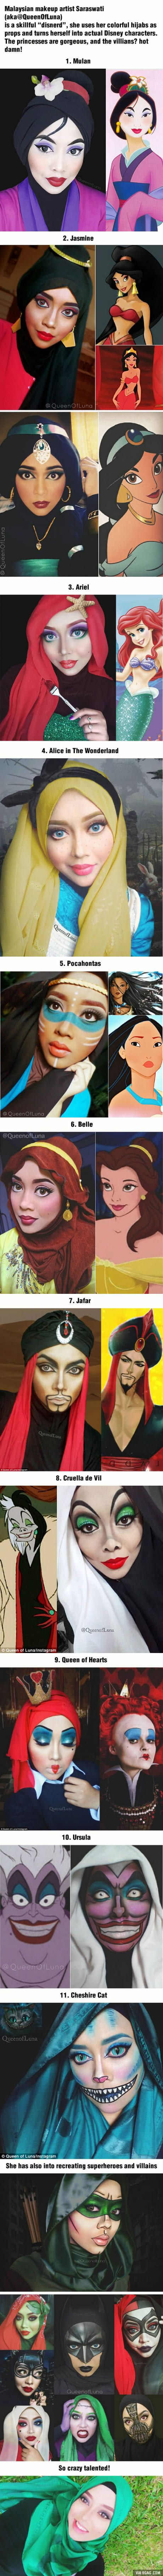 Malaysian Makeup Artist Transforms Into Stunning Disney Characters Using Her Hijab